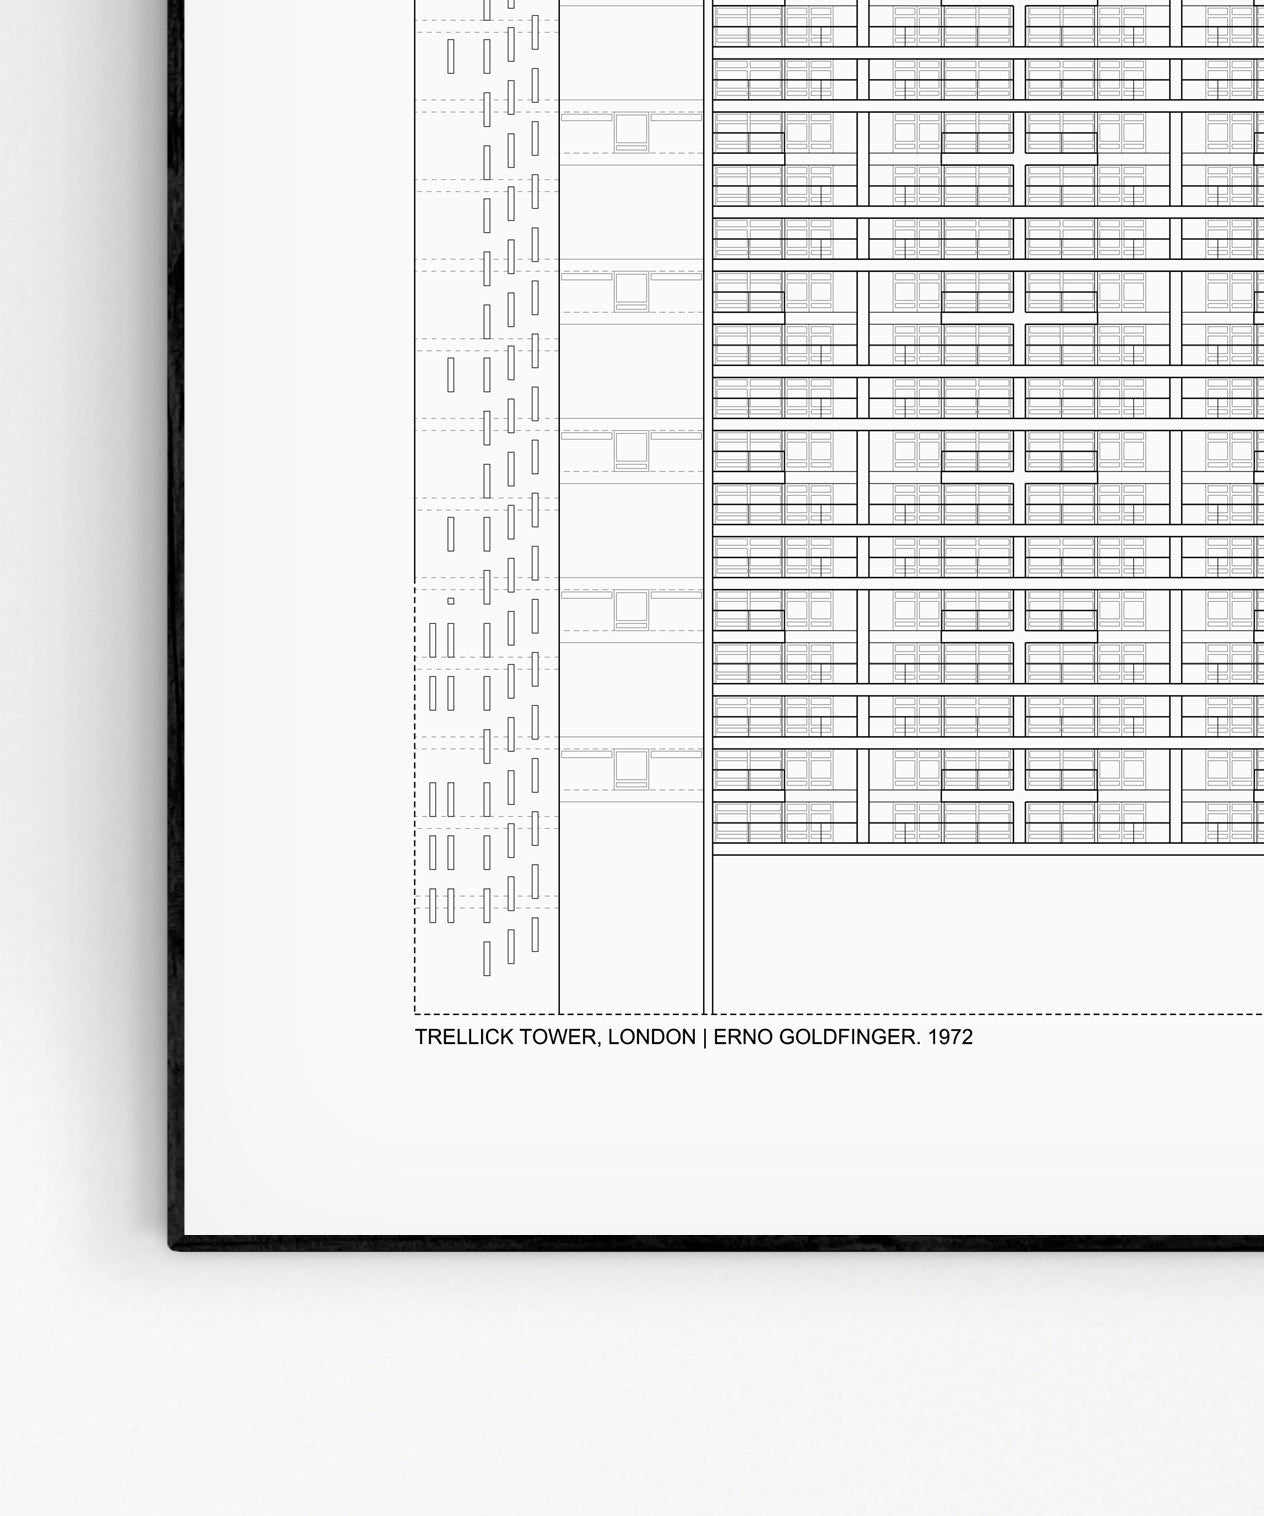 Trellick Tower Architecture Print by Studio Romuu - Detail